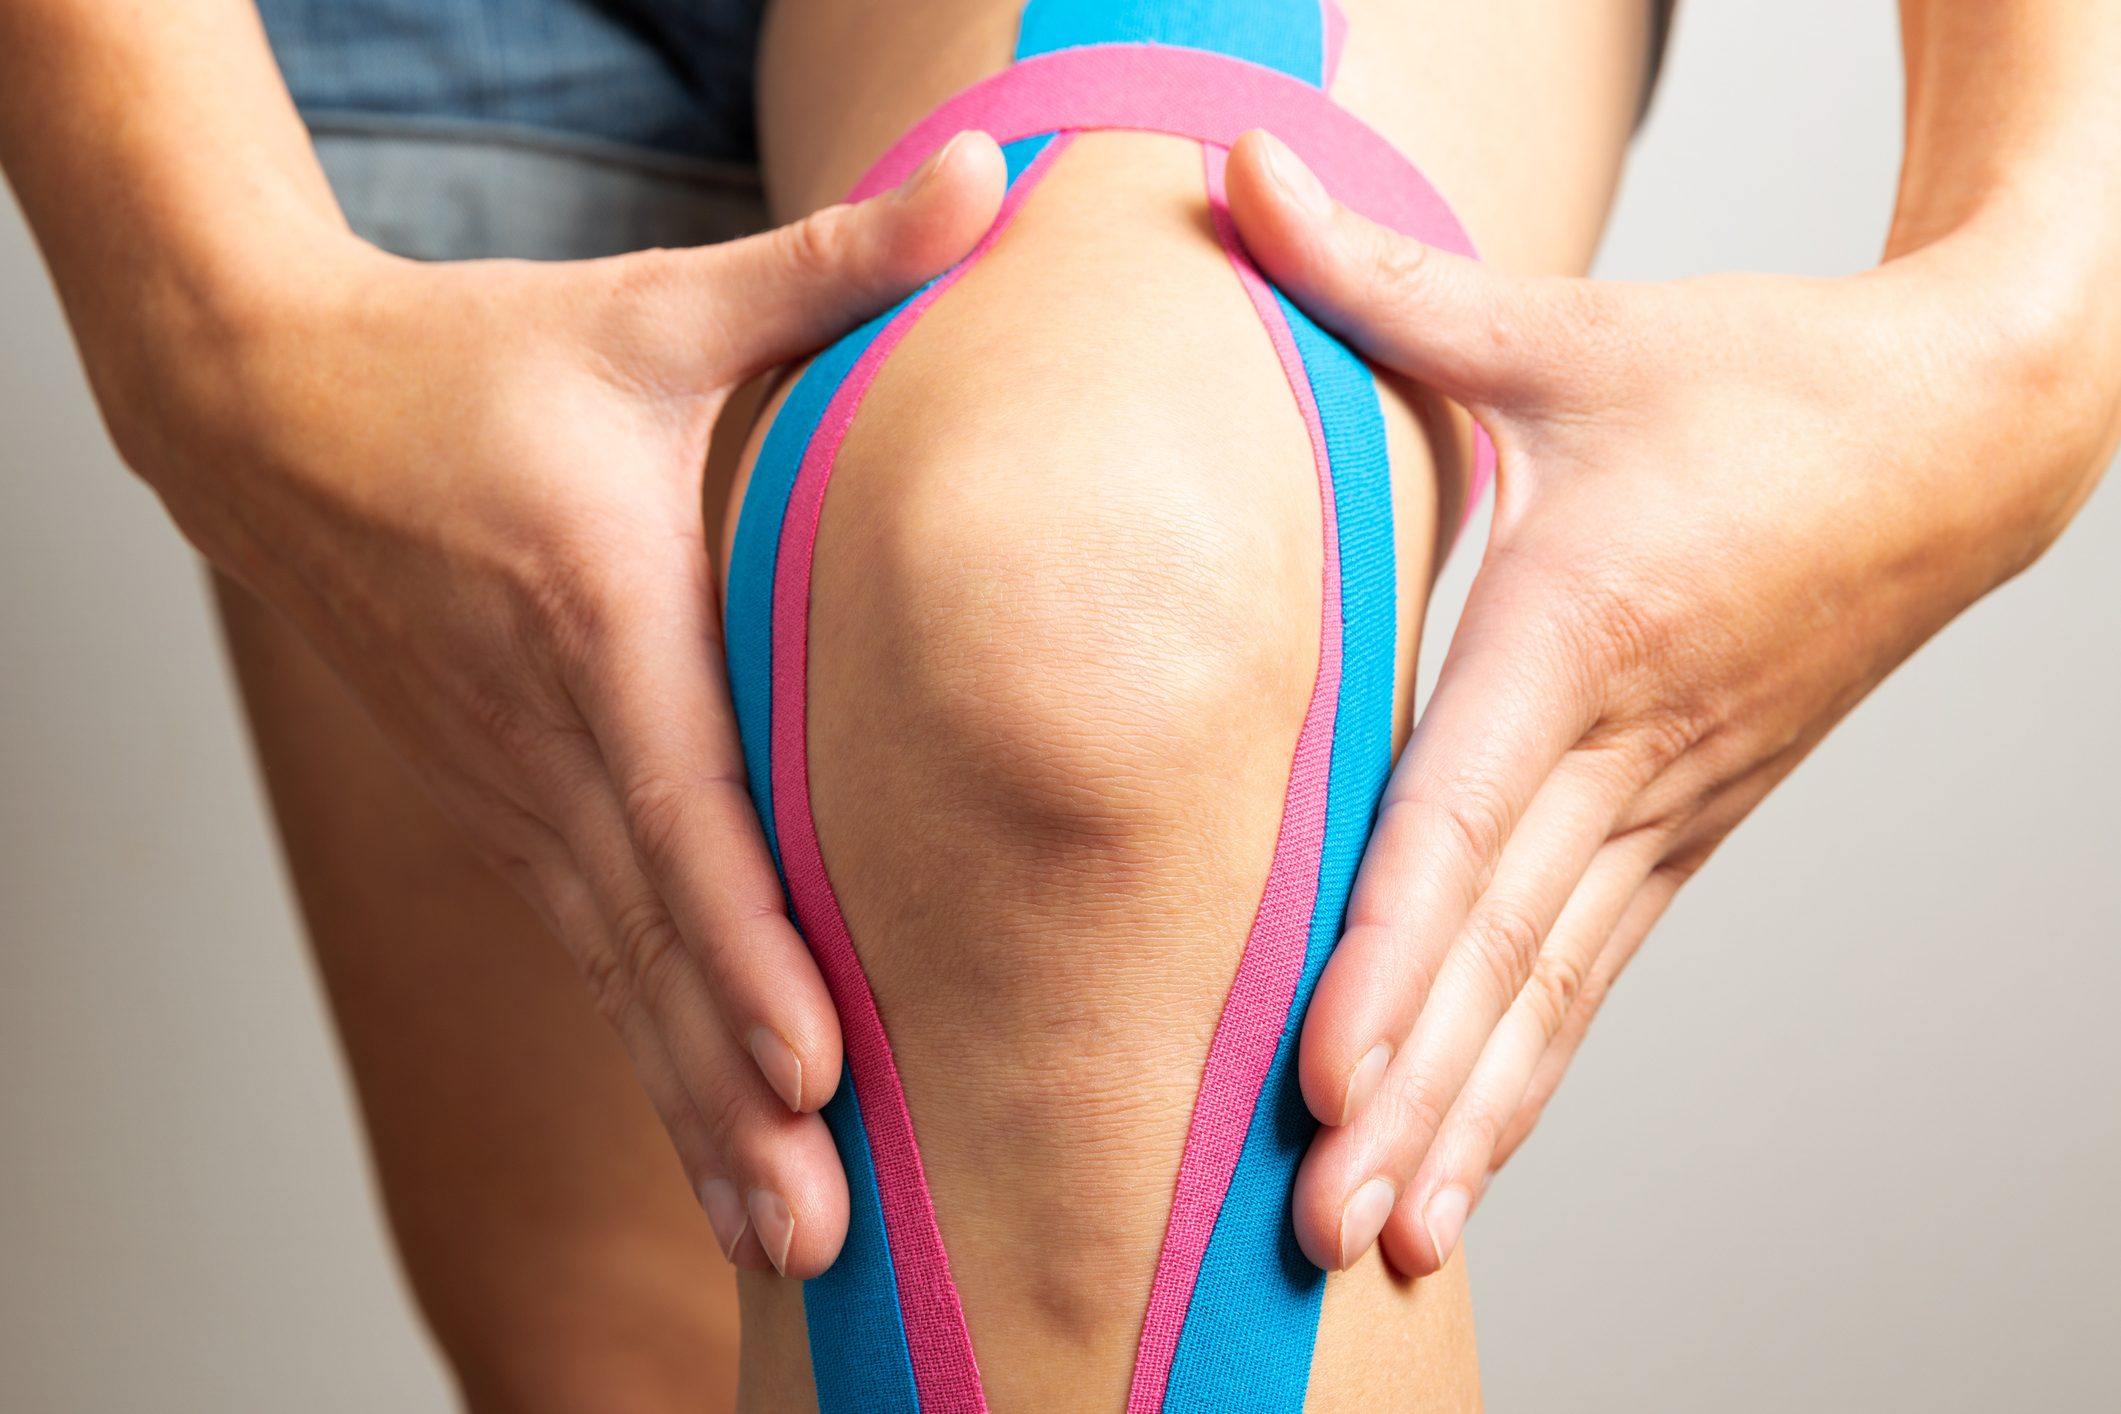 Female athlete with kinesio tape, muscle tape on knee